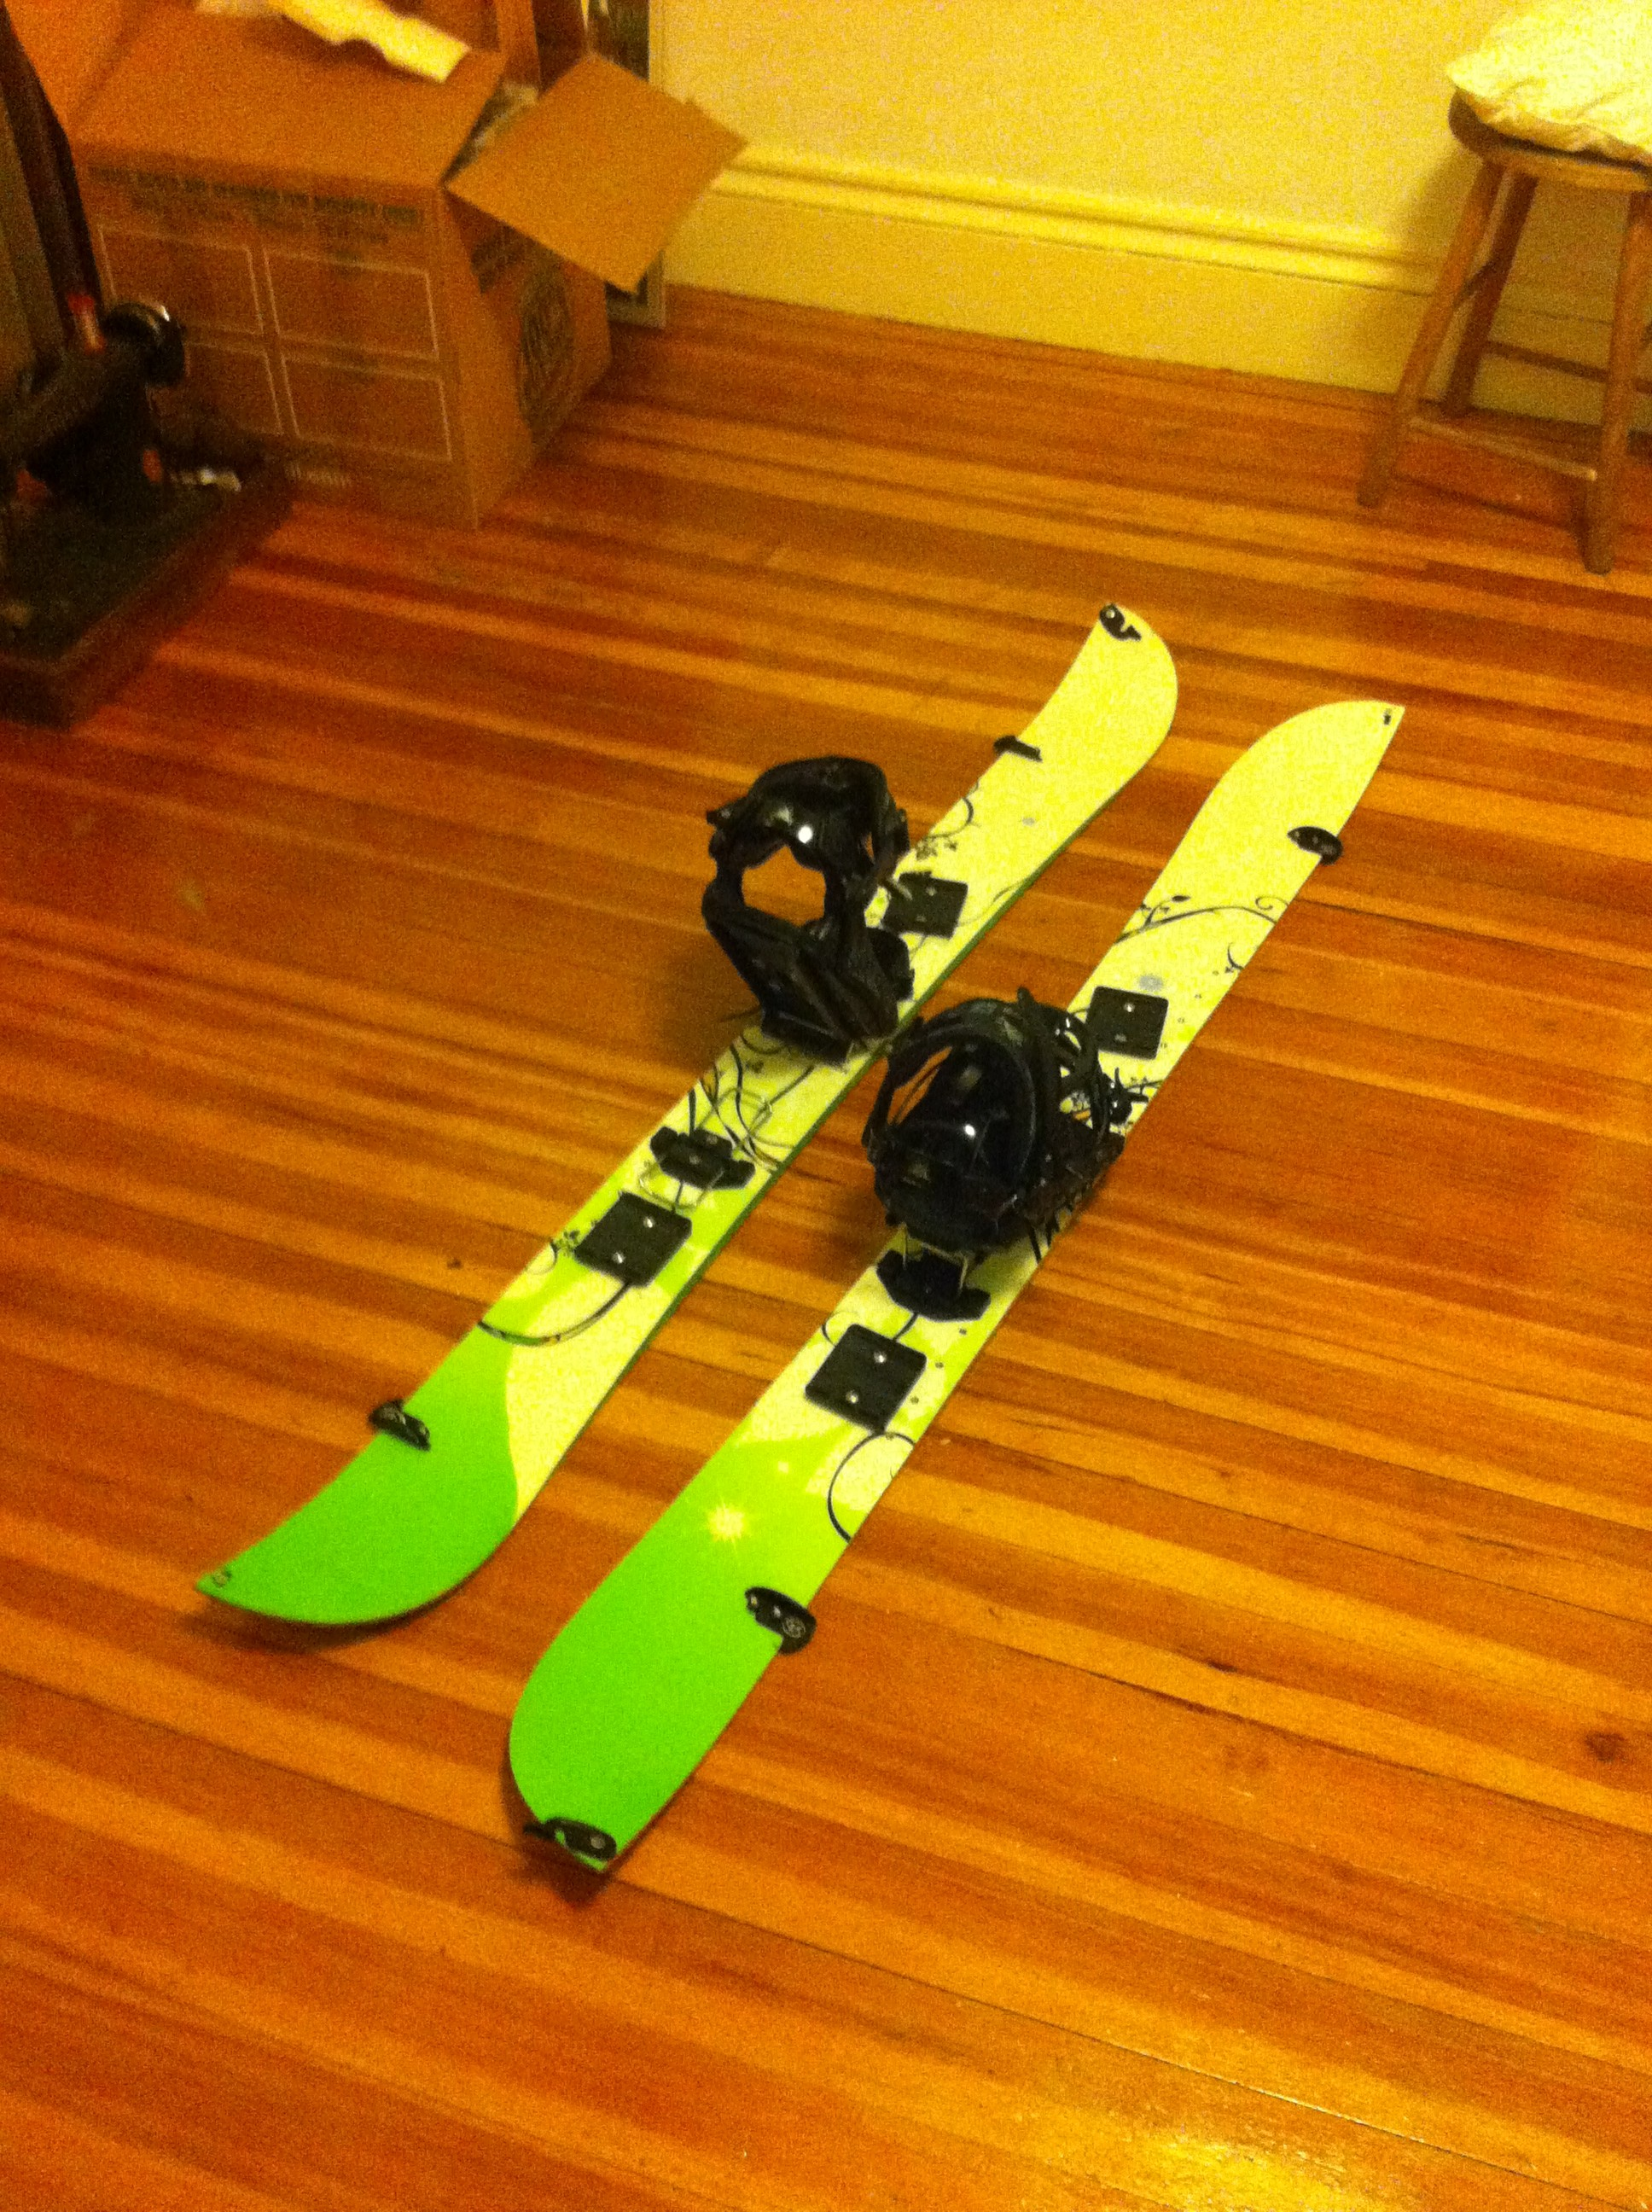 Splitboard in the ski position.